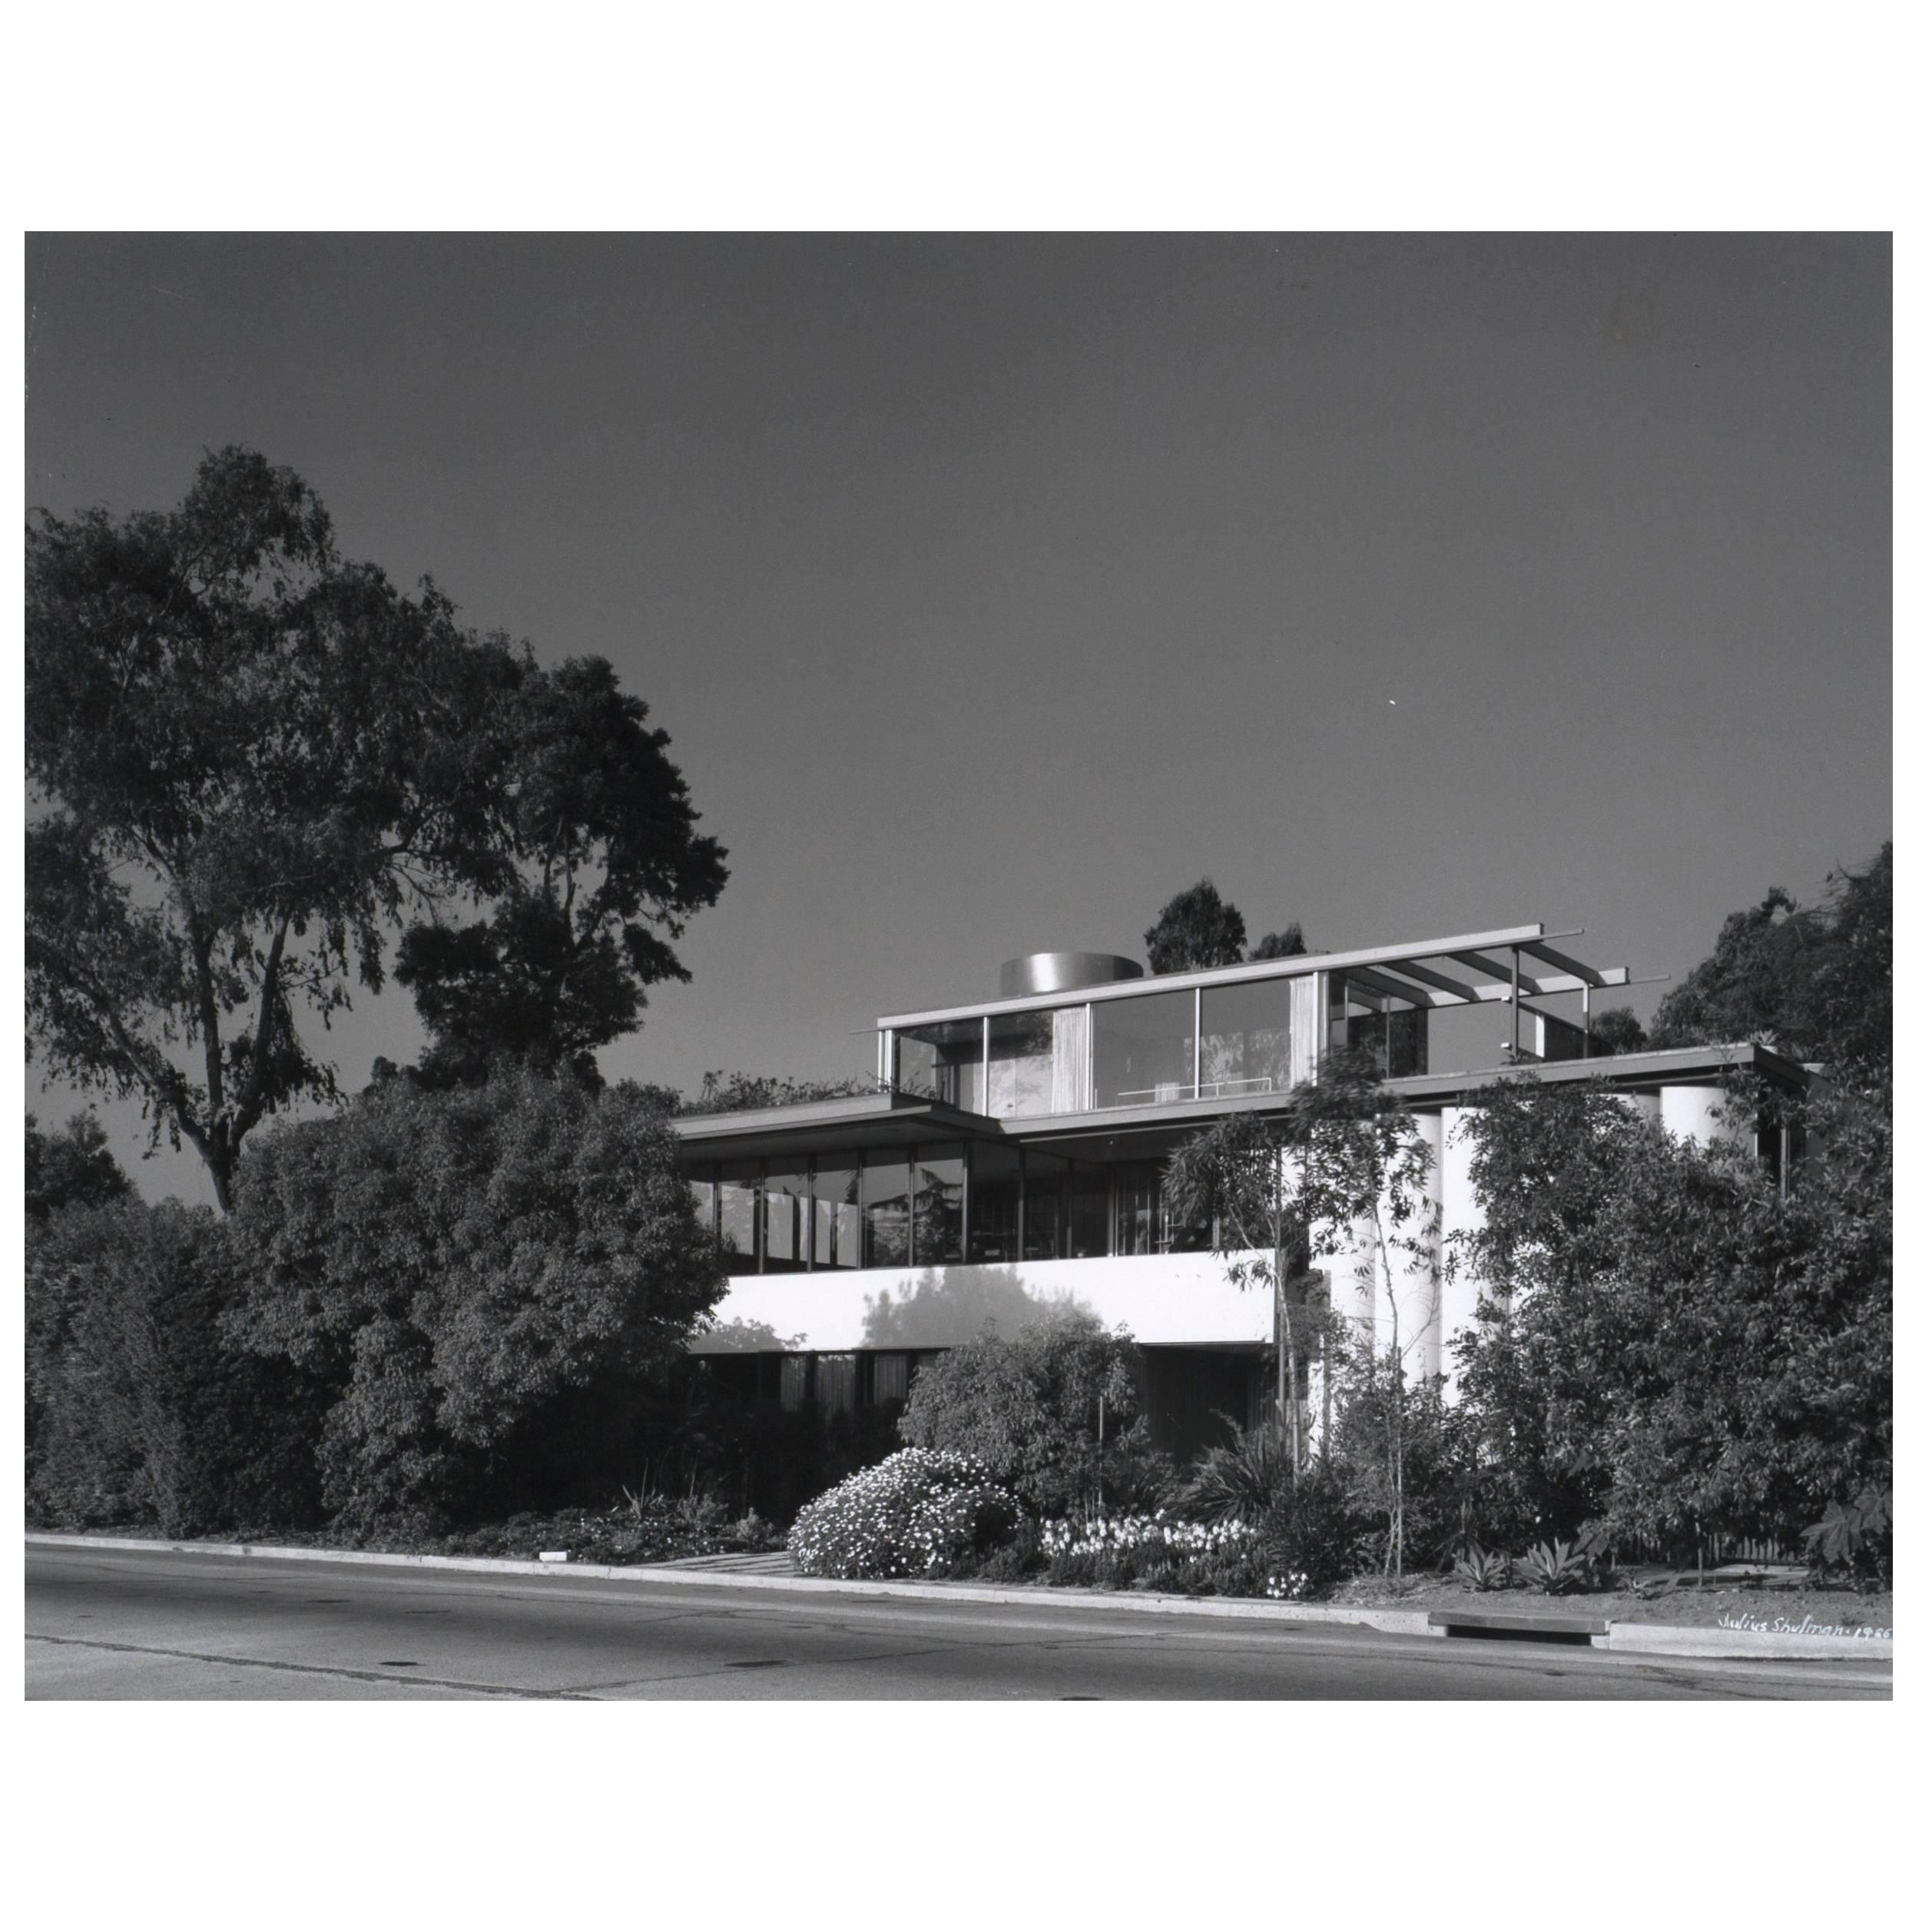 Julius Shulman VDL Research House by Richard Neutra Architectural Photograph